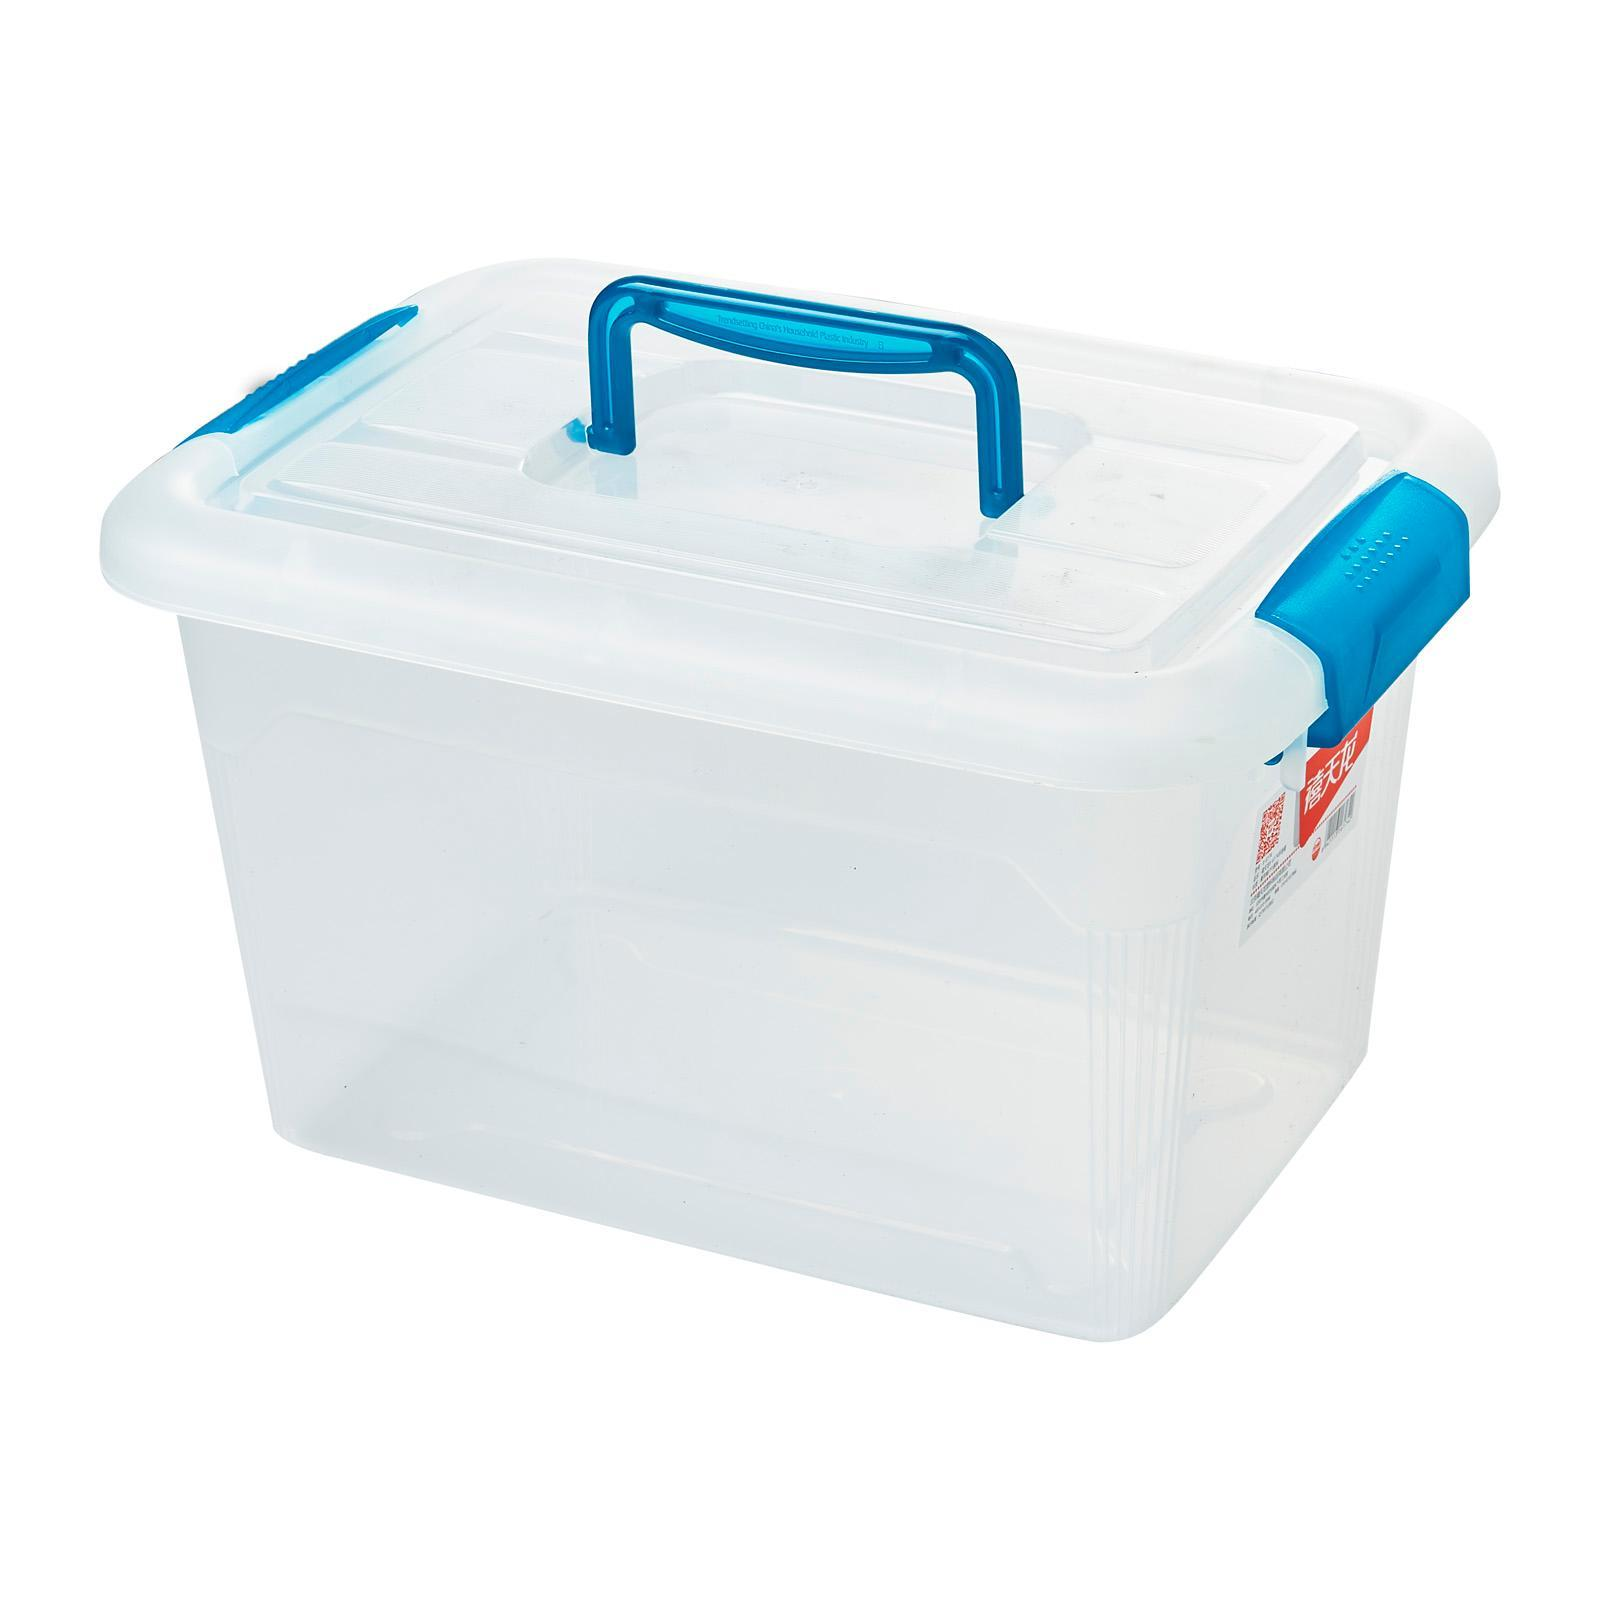 Citylife 8 L Handheld Container